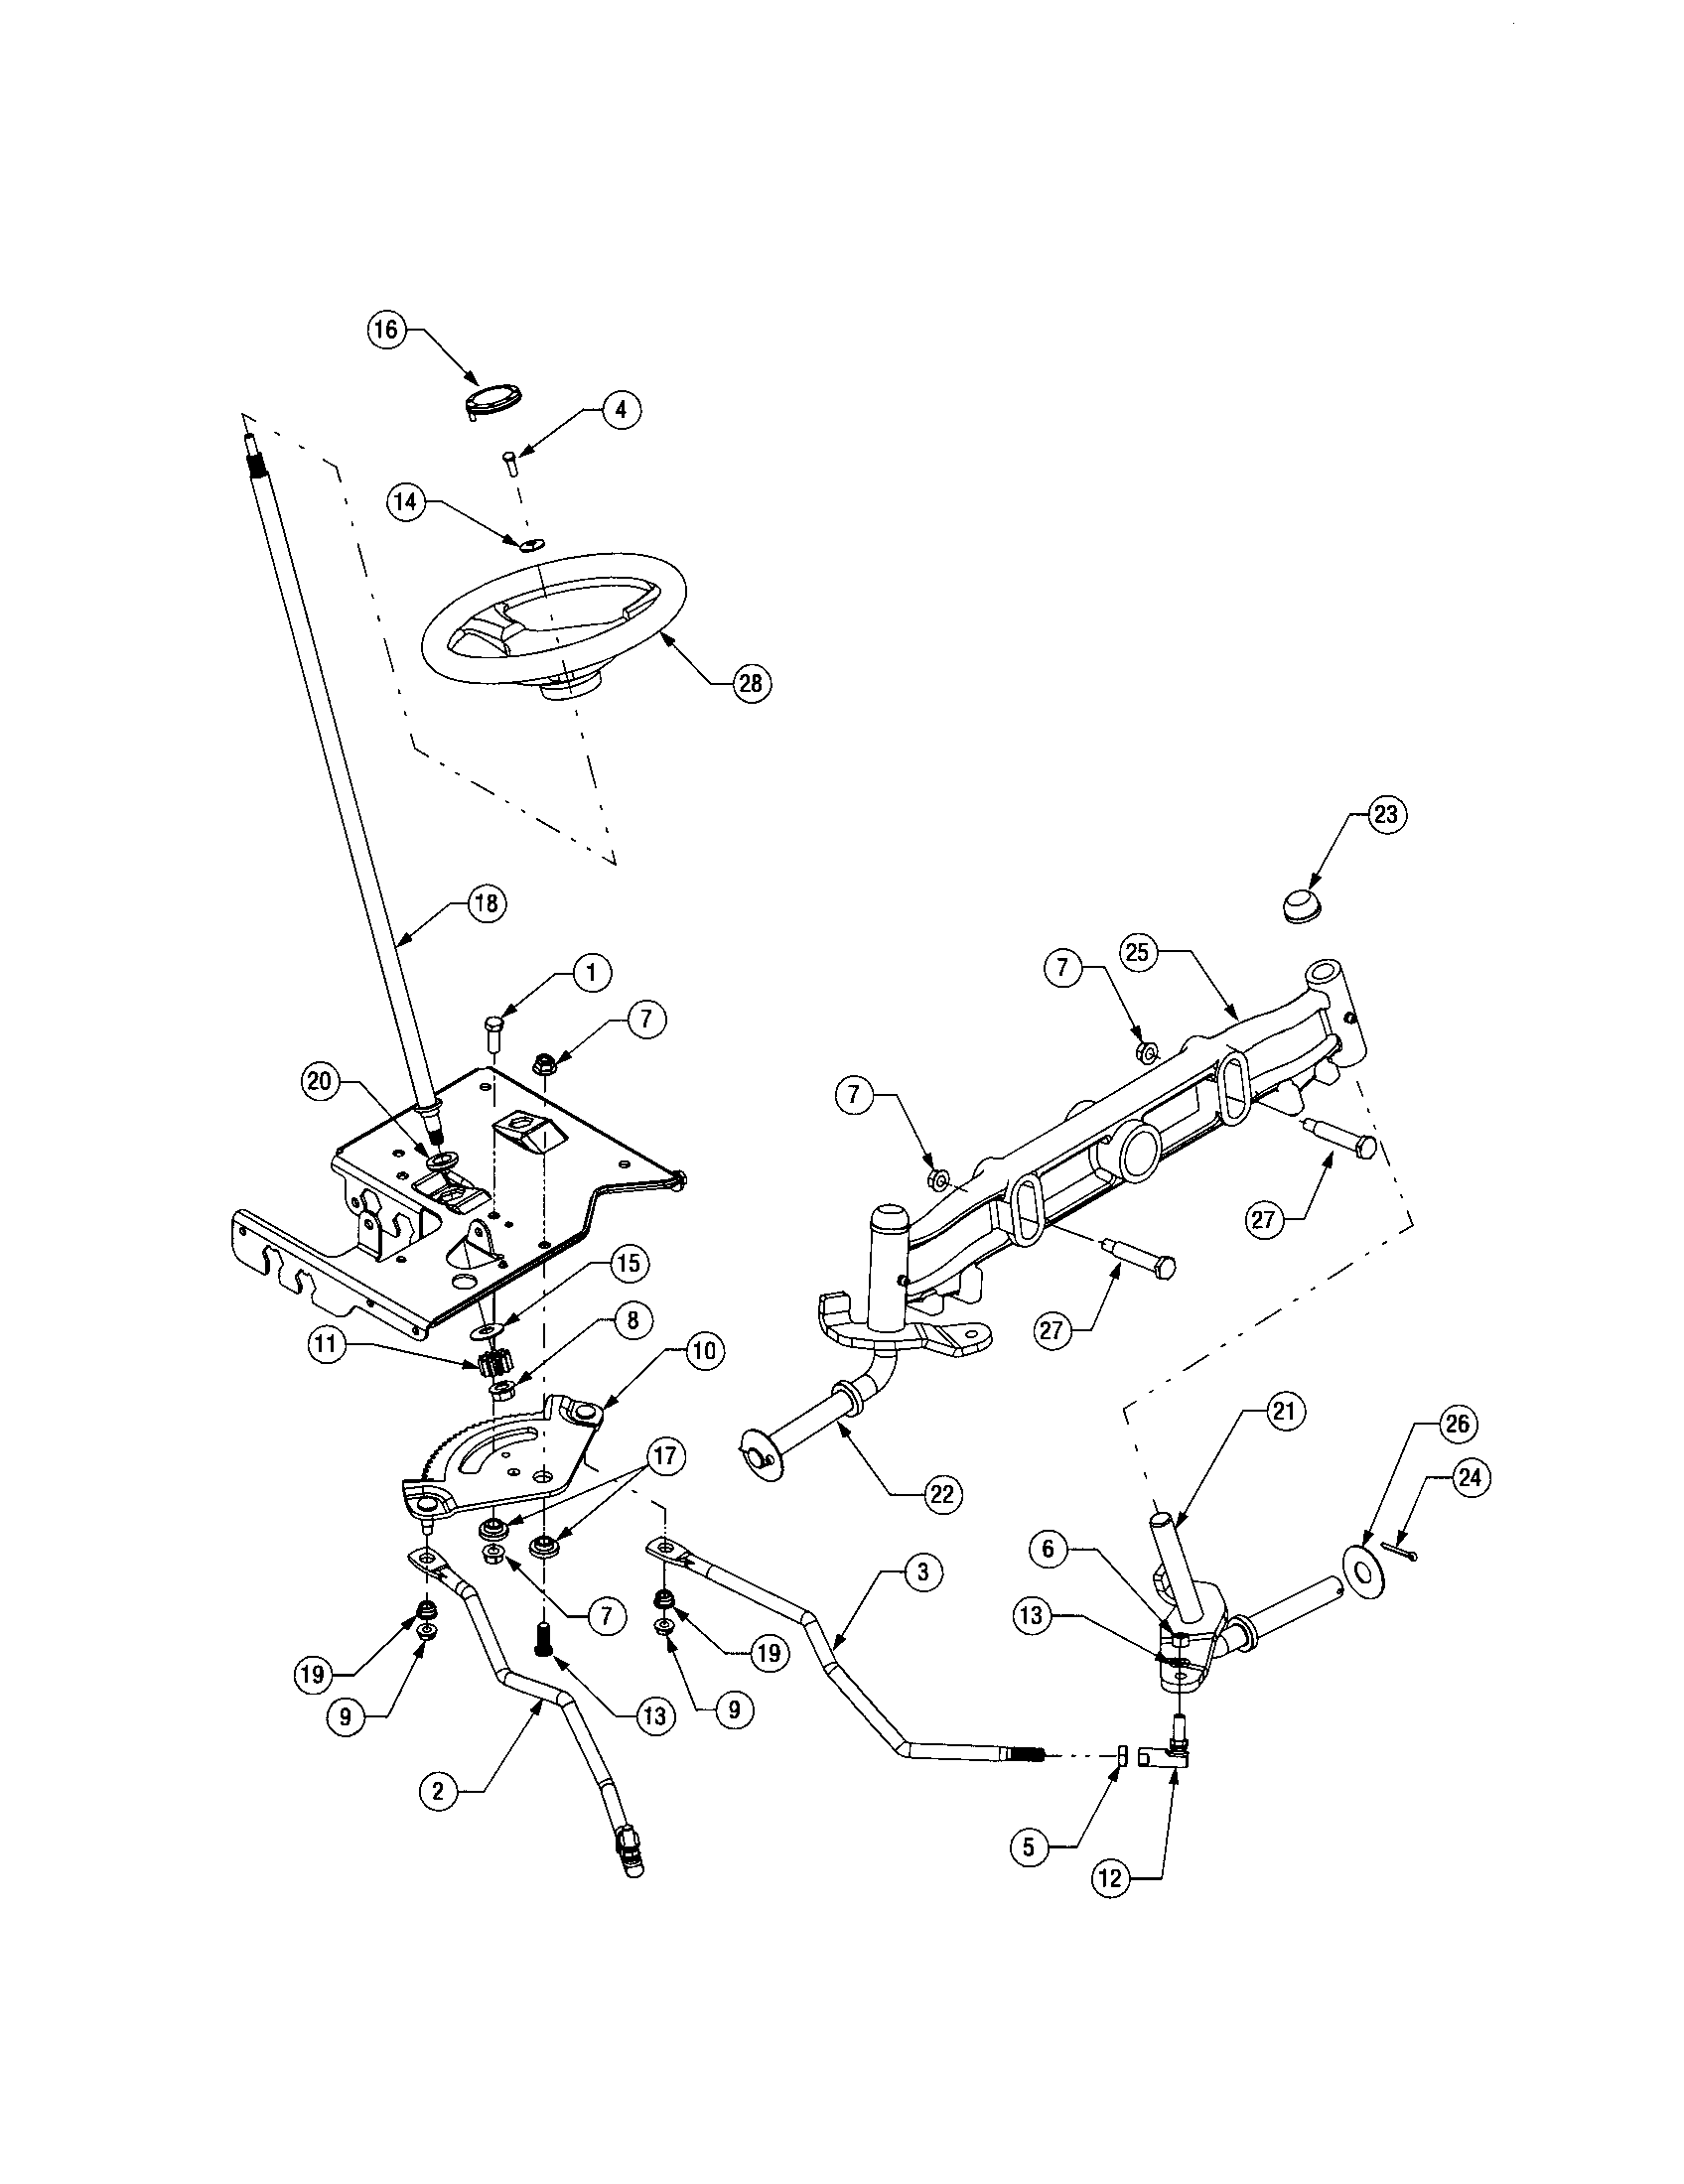 hight resolution of toro lx420 steering diagram